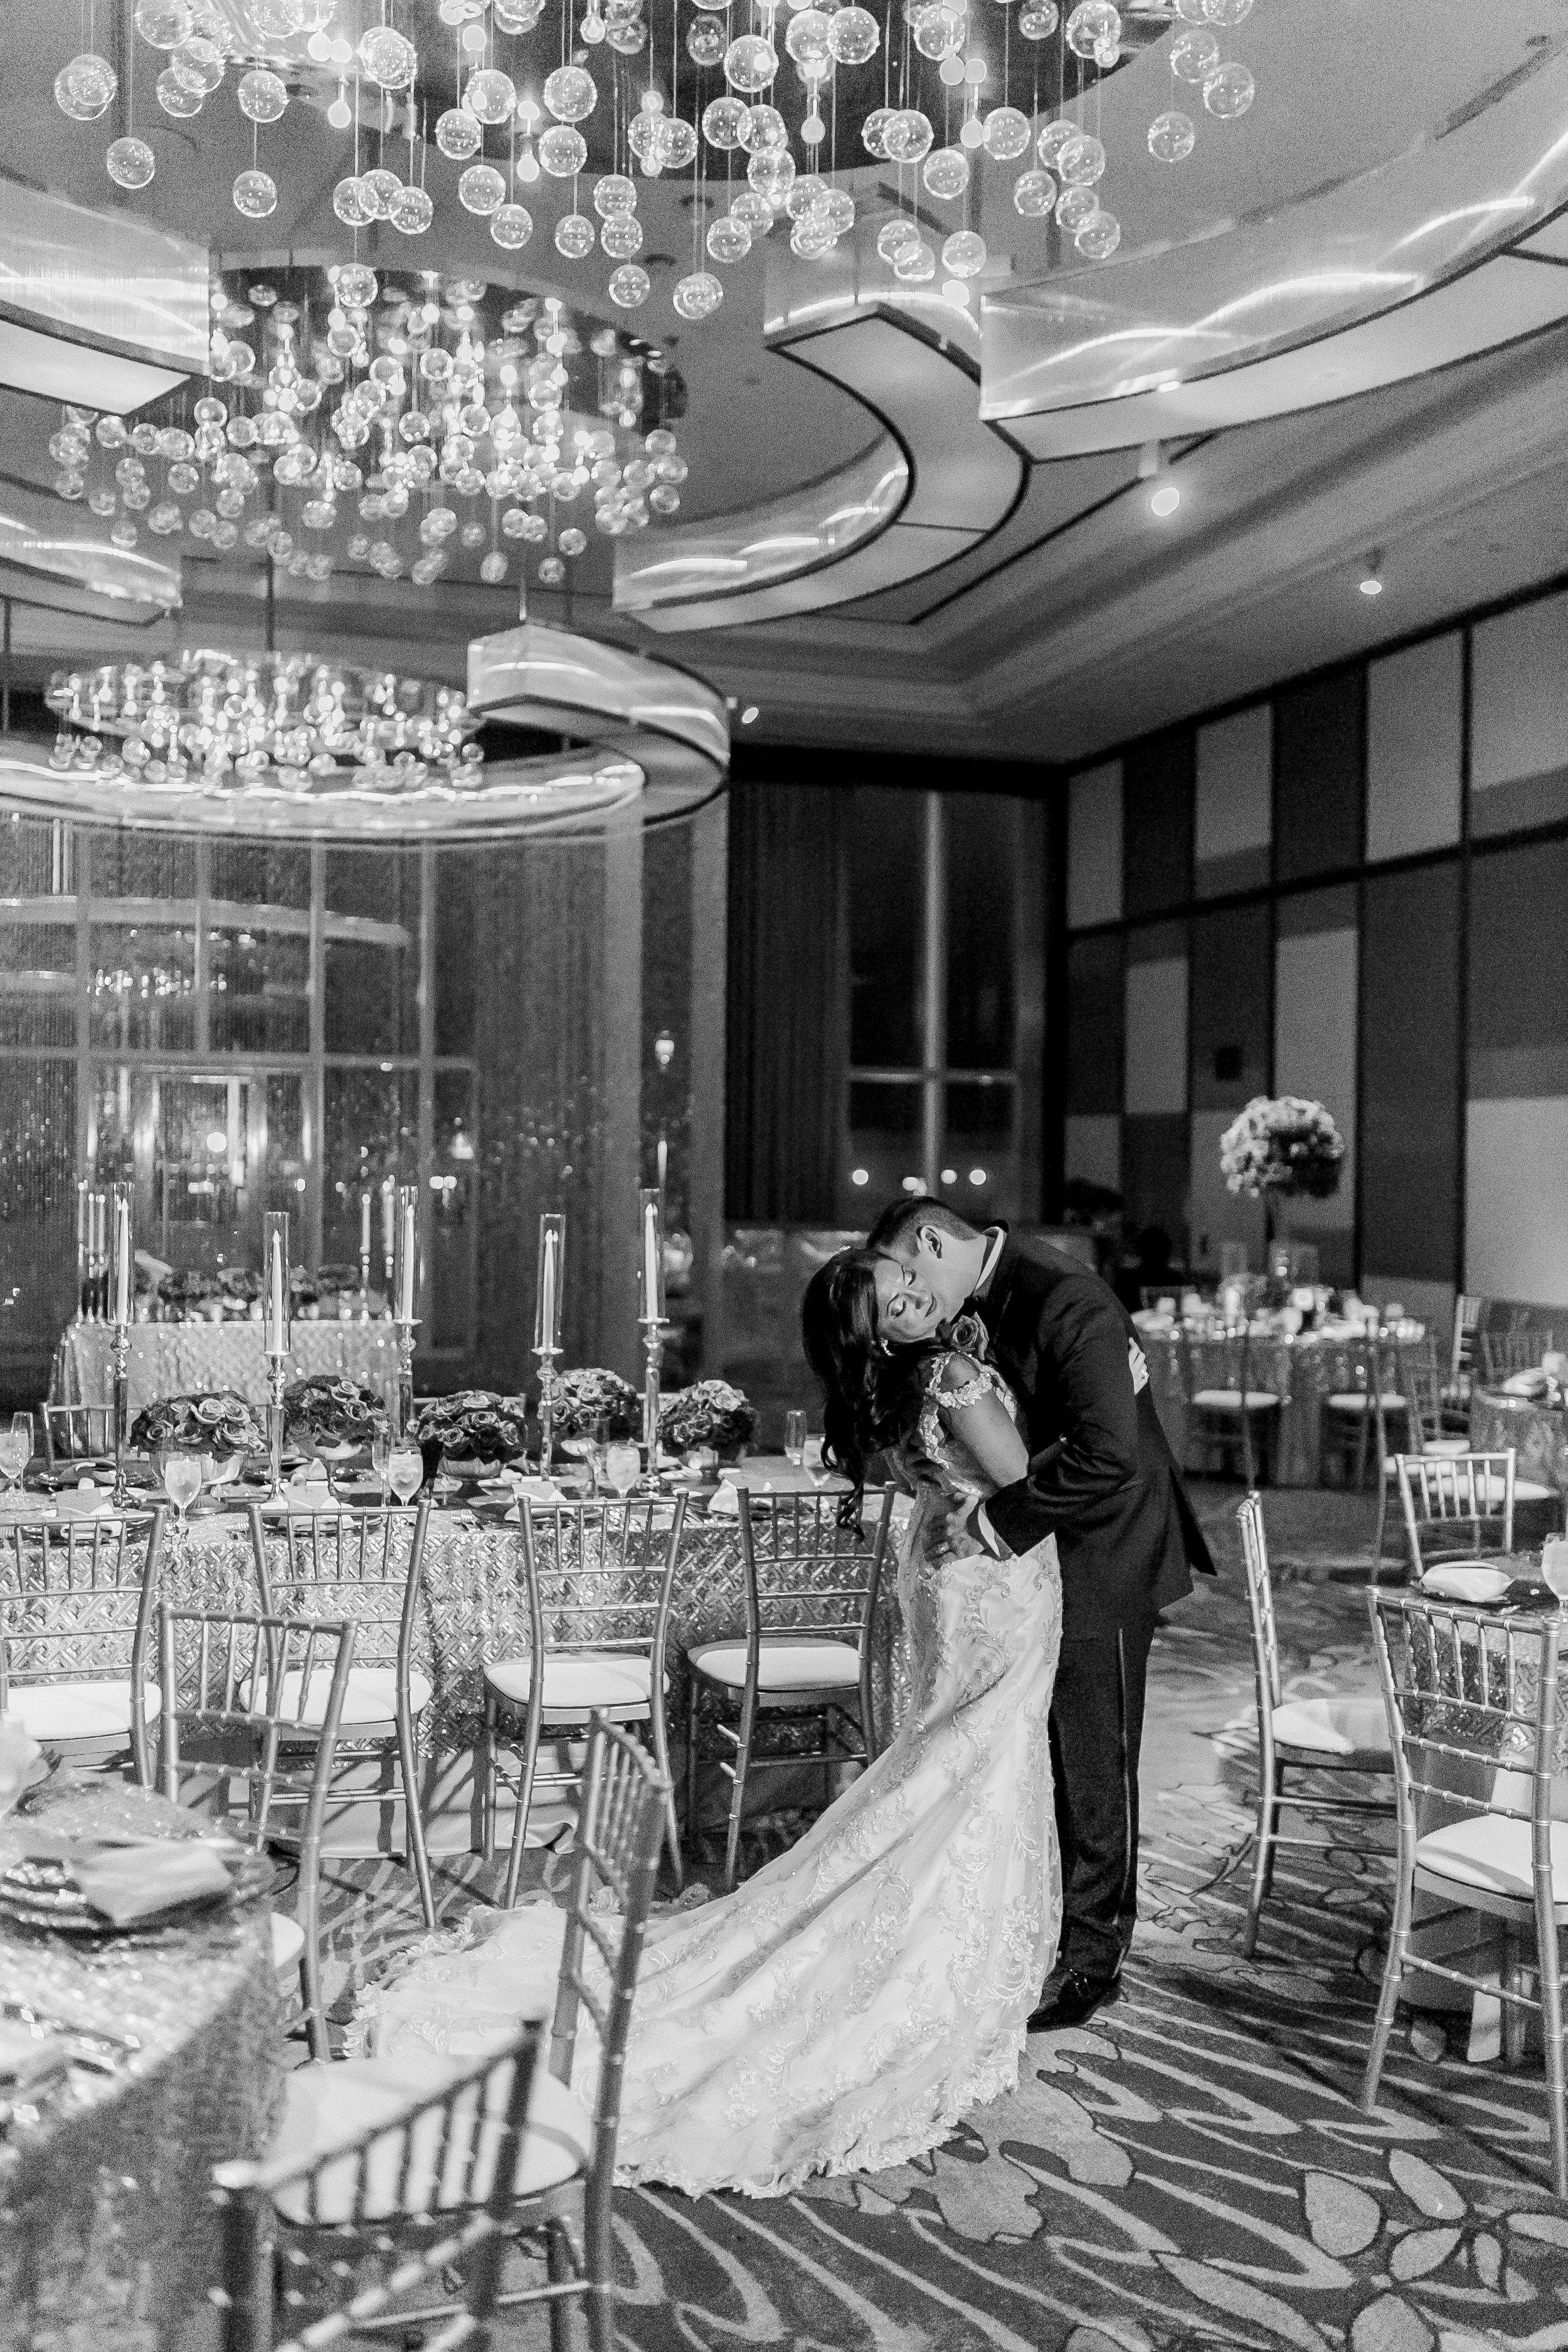 Black and White image of bride and groom in a passionate kiss.    Las Vegas Wedding Planner Andrea Eppolito.  www.andreaeppolitoevents.com  Photo by J.Anne Photography.  www.j-annephotography.com  As seen on The  Wedding Editorialist  Wedding Blog.